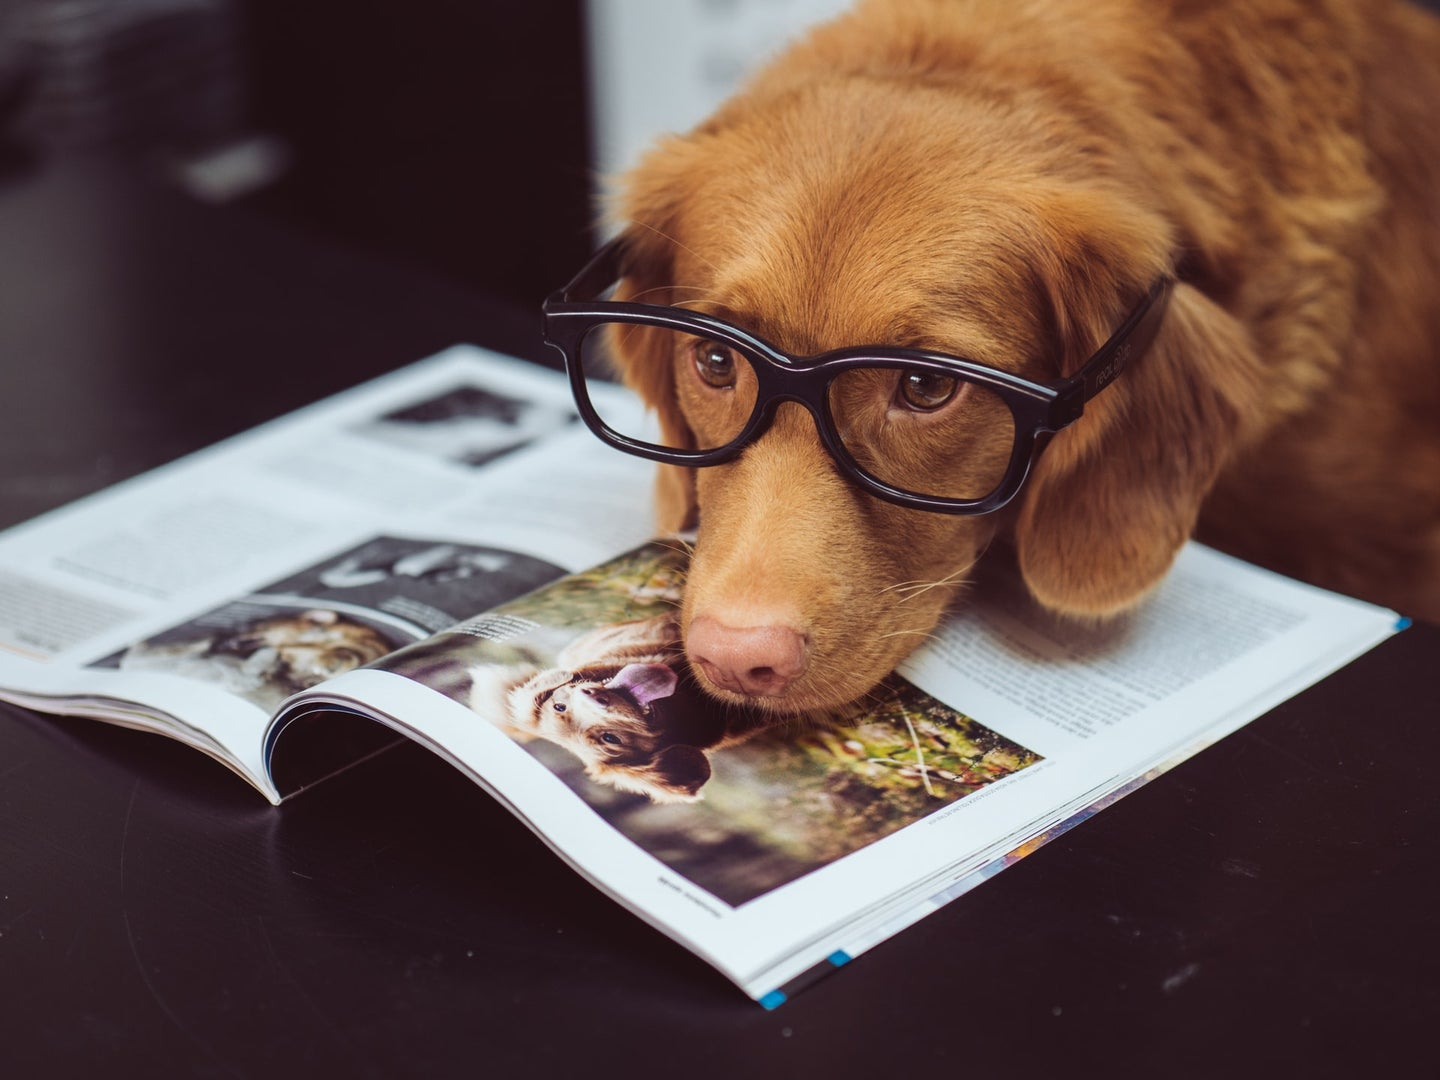 A retriever puppy wearing black glasses with its head on a dog magazine